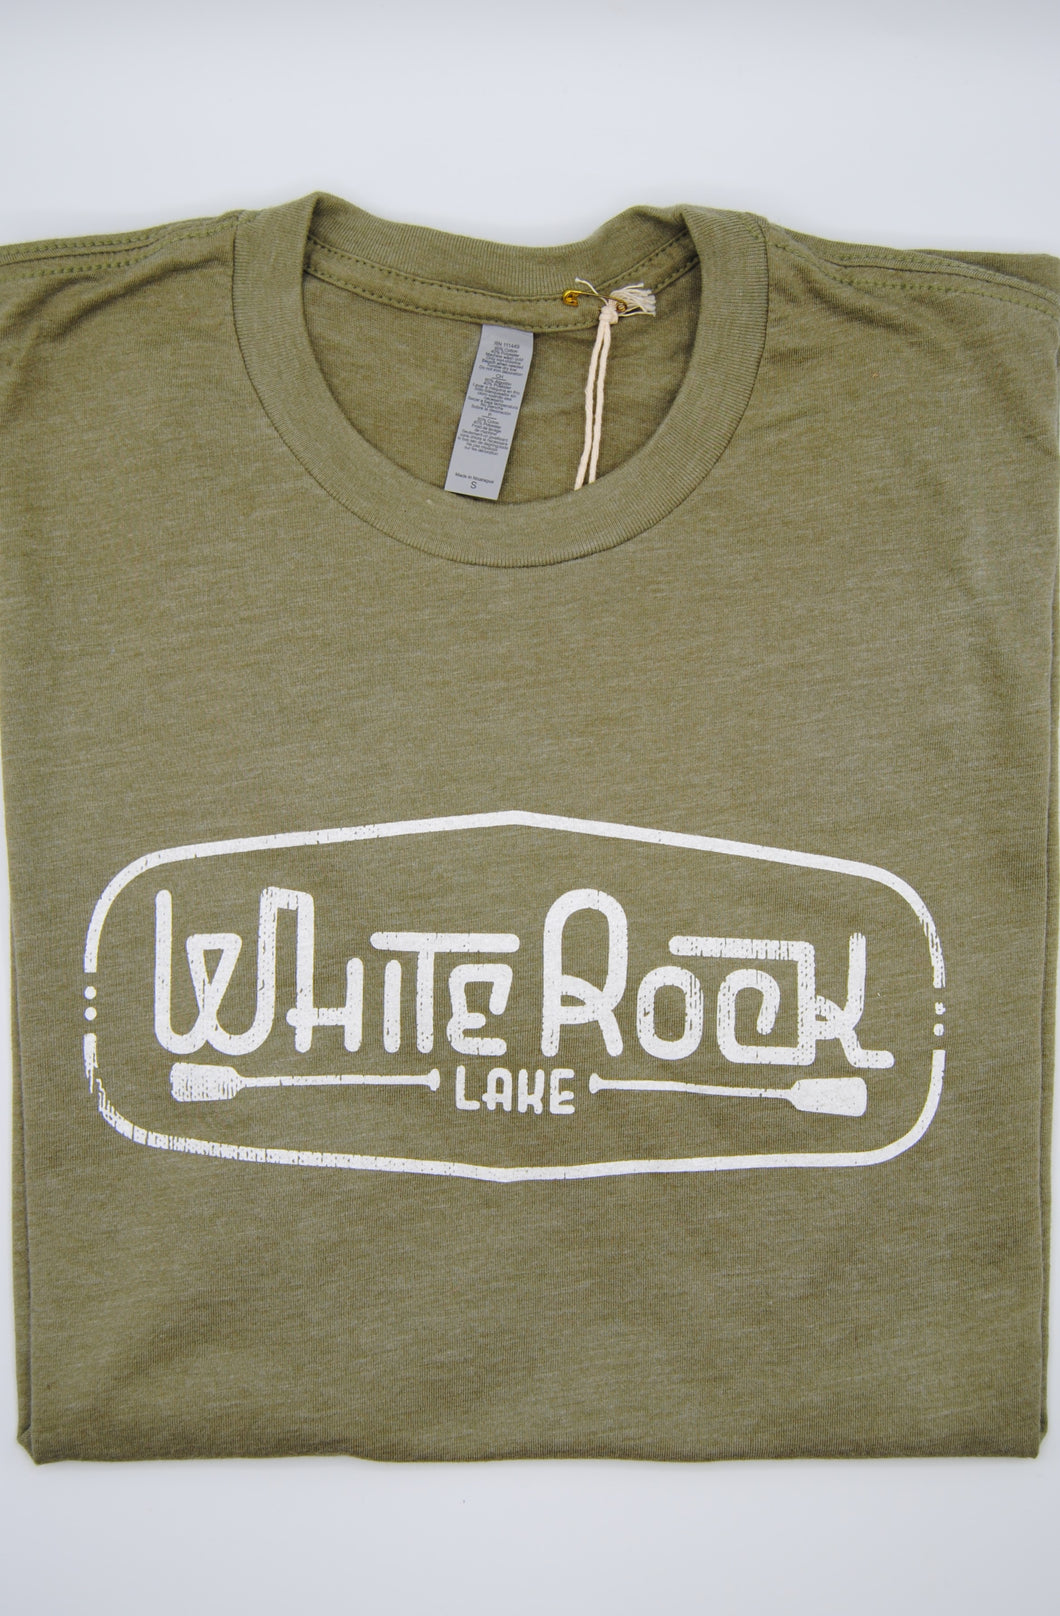 Crew-Neck White Rock Lake Short Sleeve Shirt